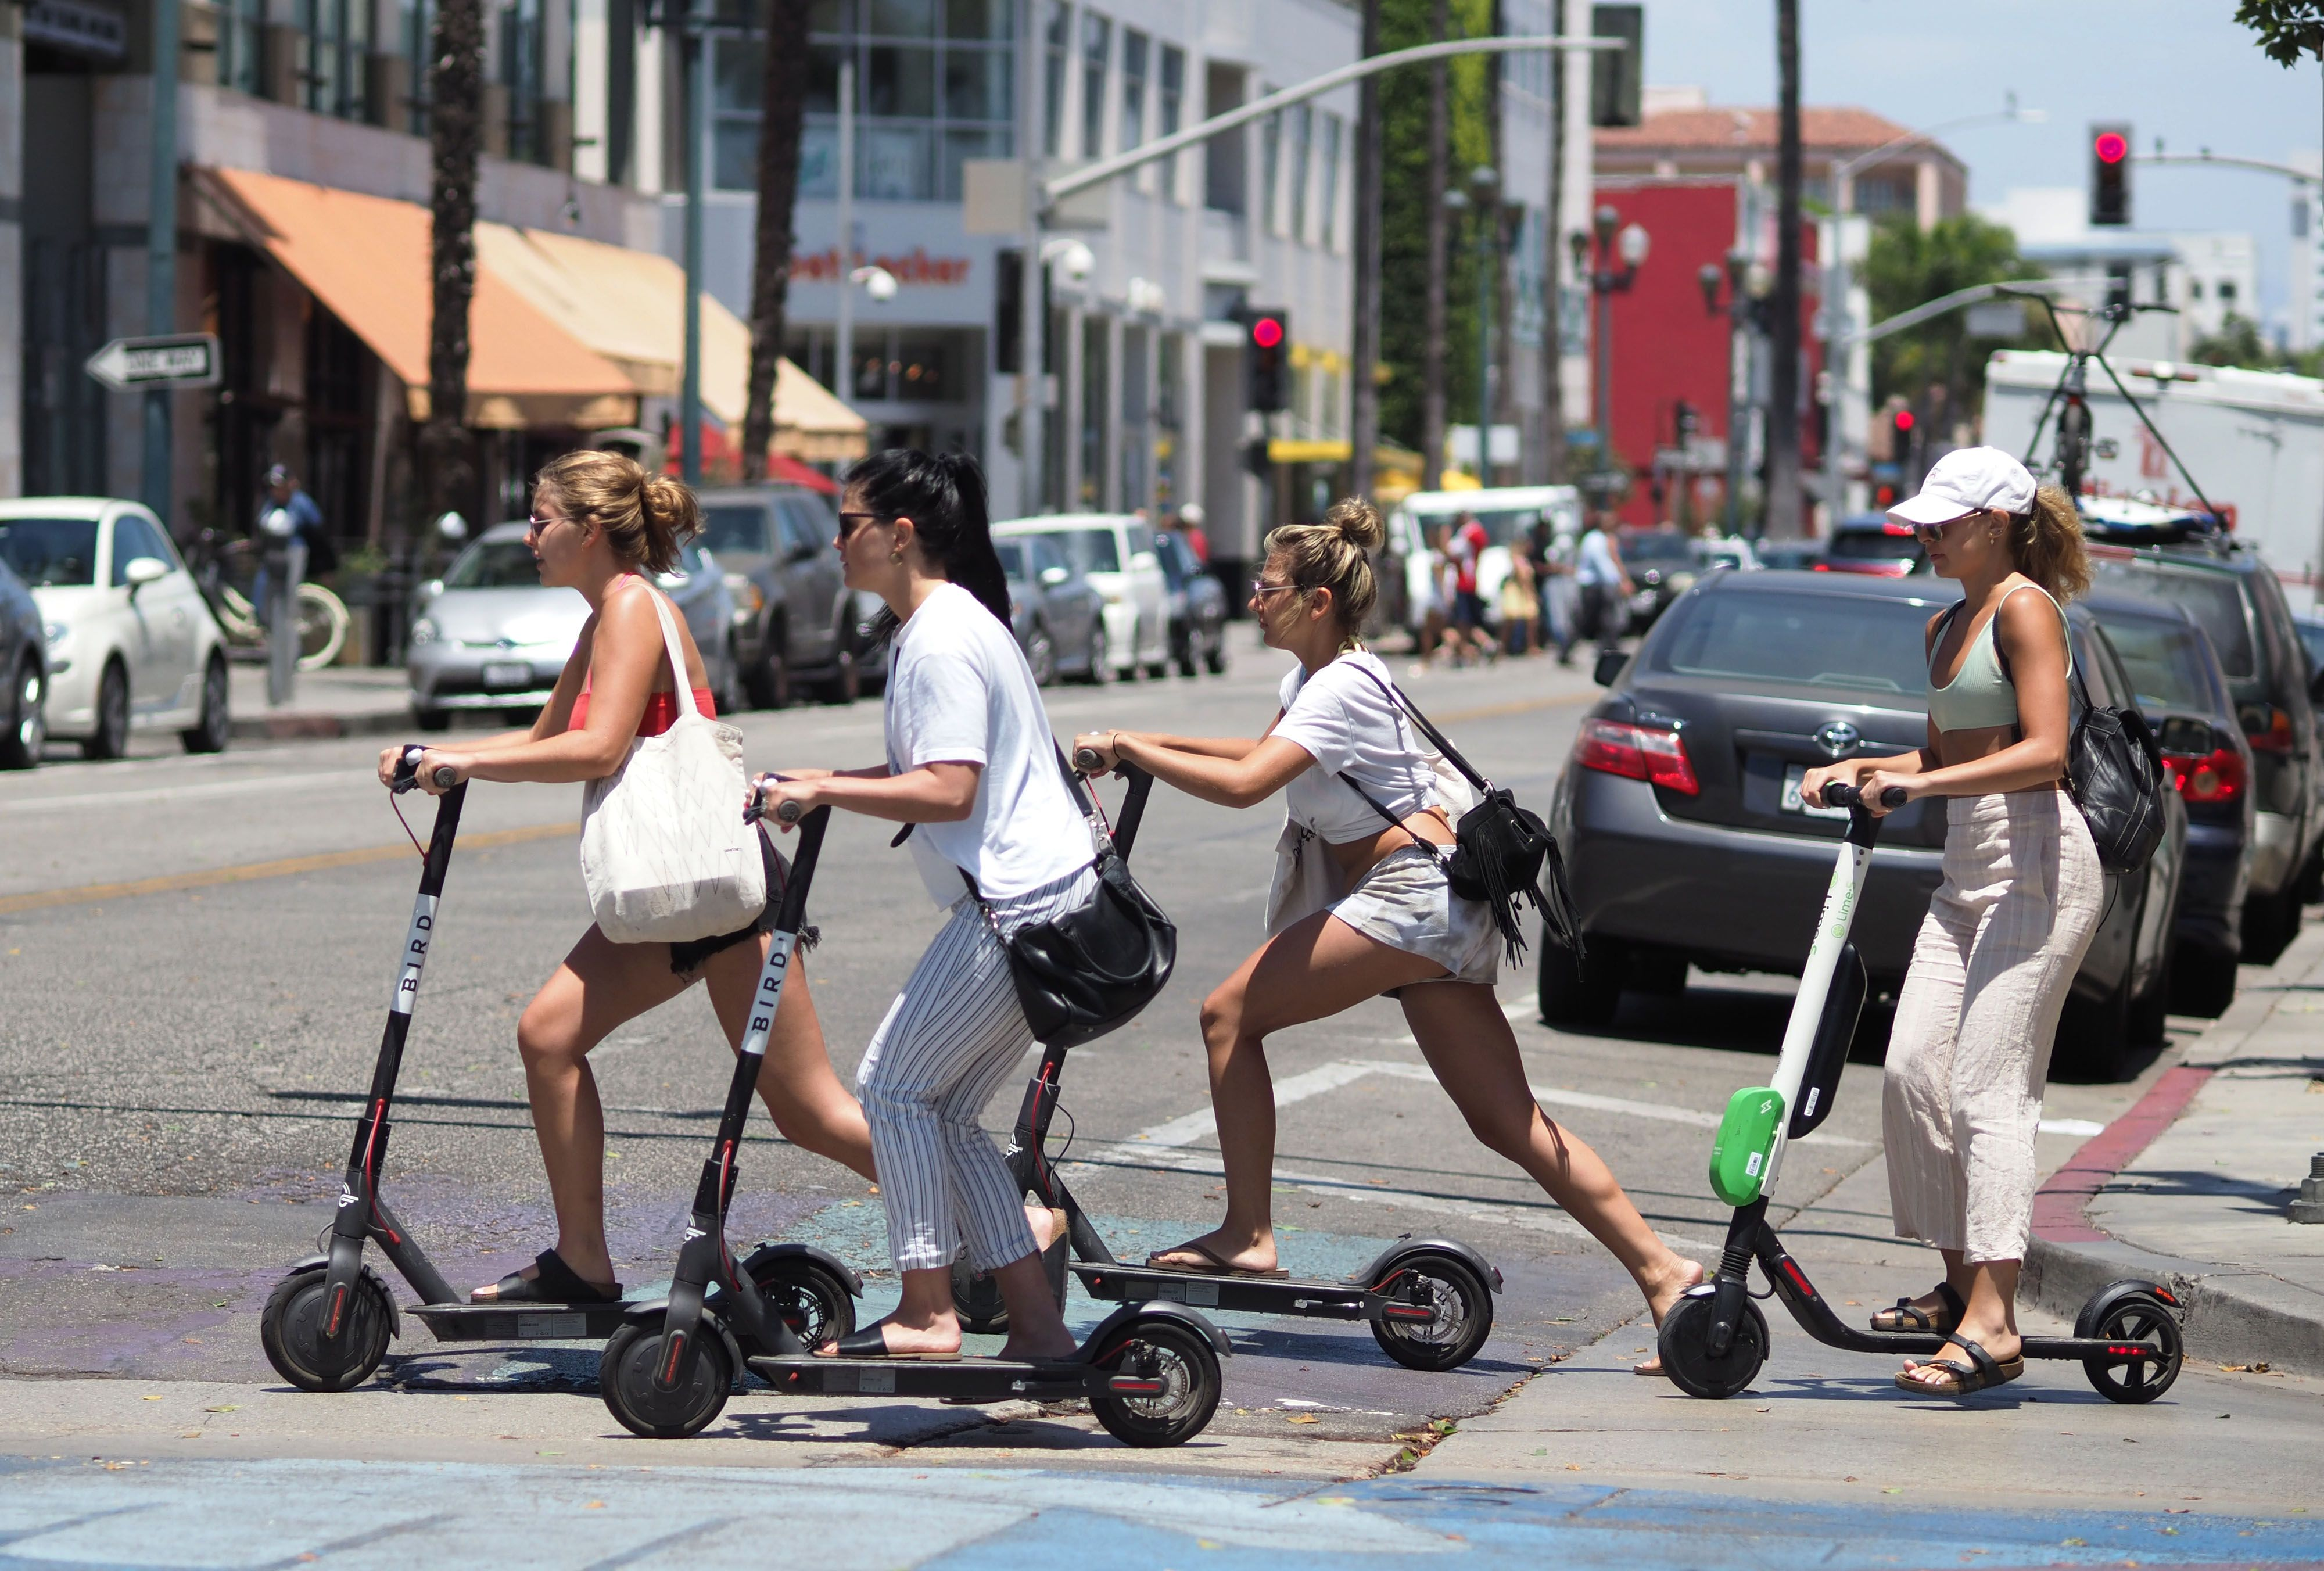 Controversial Rental Electric Scooters May Soon Come To